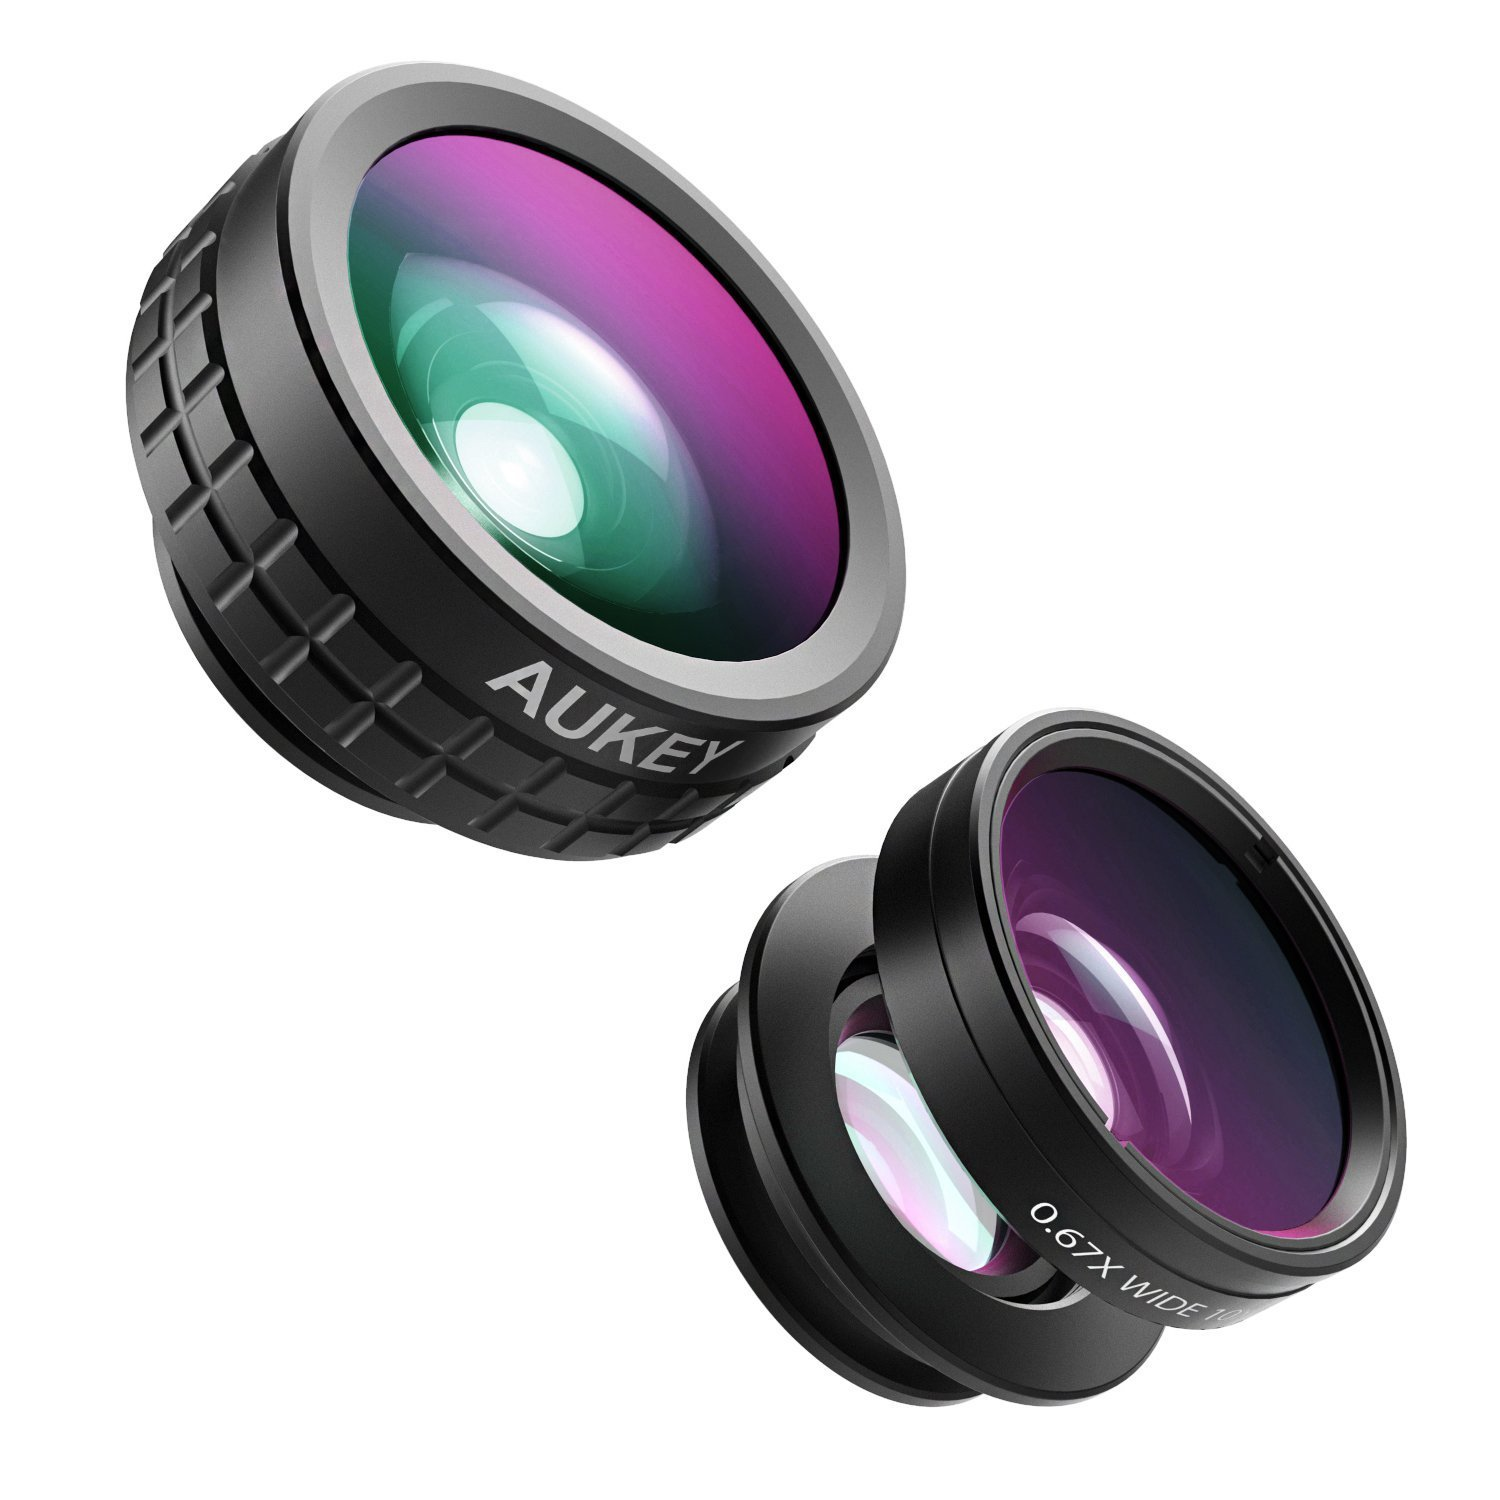 AUKEY Optic iPhone Lens, 180° Fisheye Lens + 110° Wide Angle + 10x Macro Mini Clip-on Cell Phone Camera Lenses Kit for Samsung, Android Smartphones PL-A1